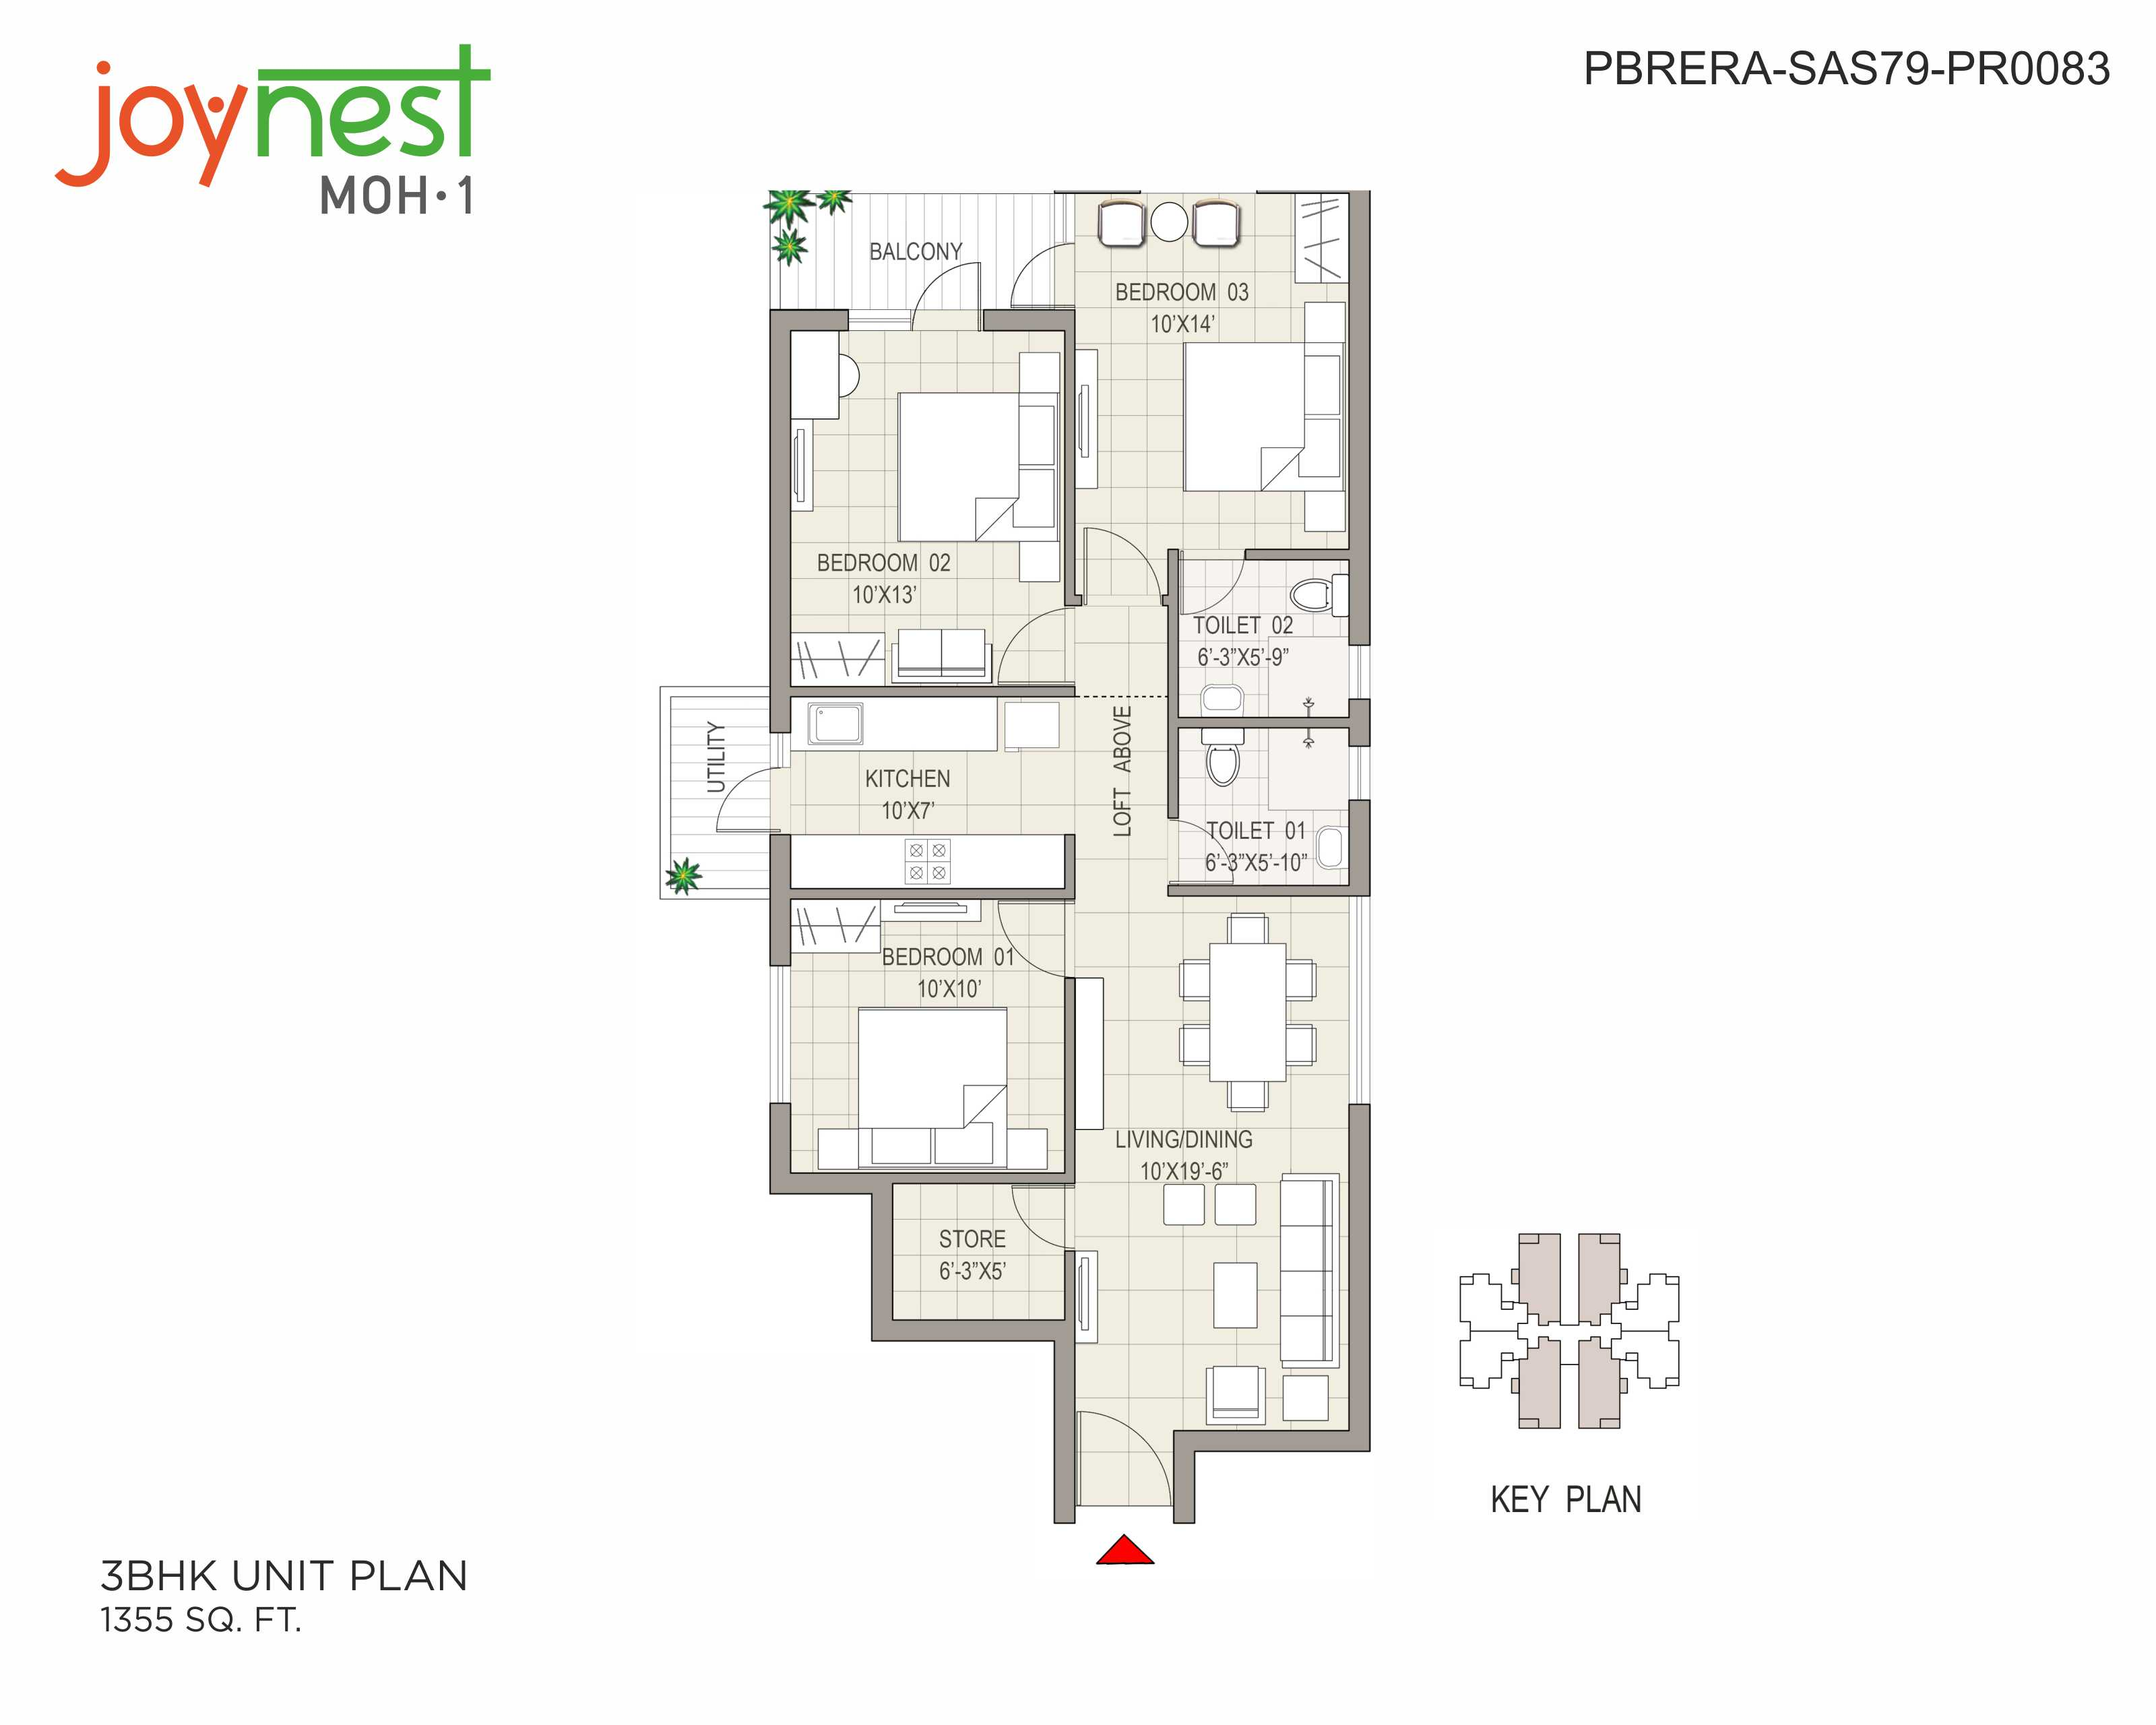 Unit Plan - 3BHK - 1355 sq. ft.